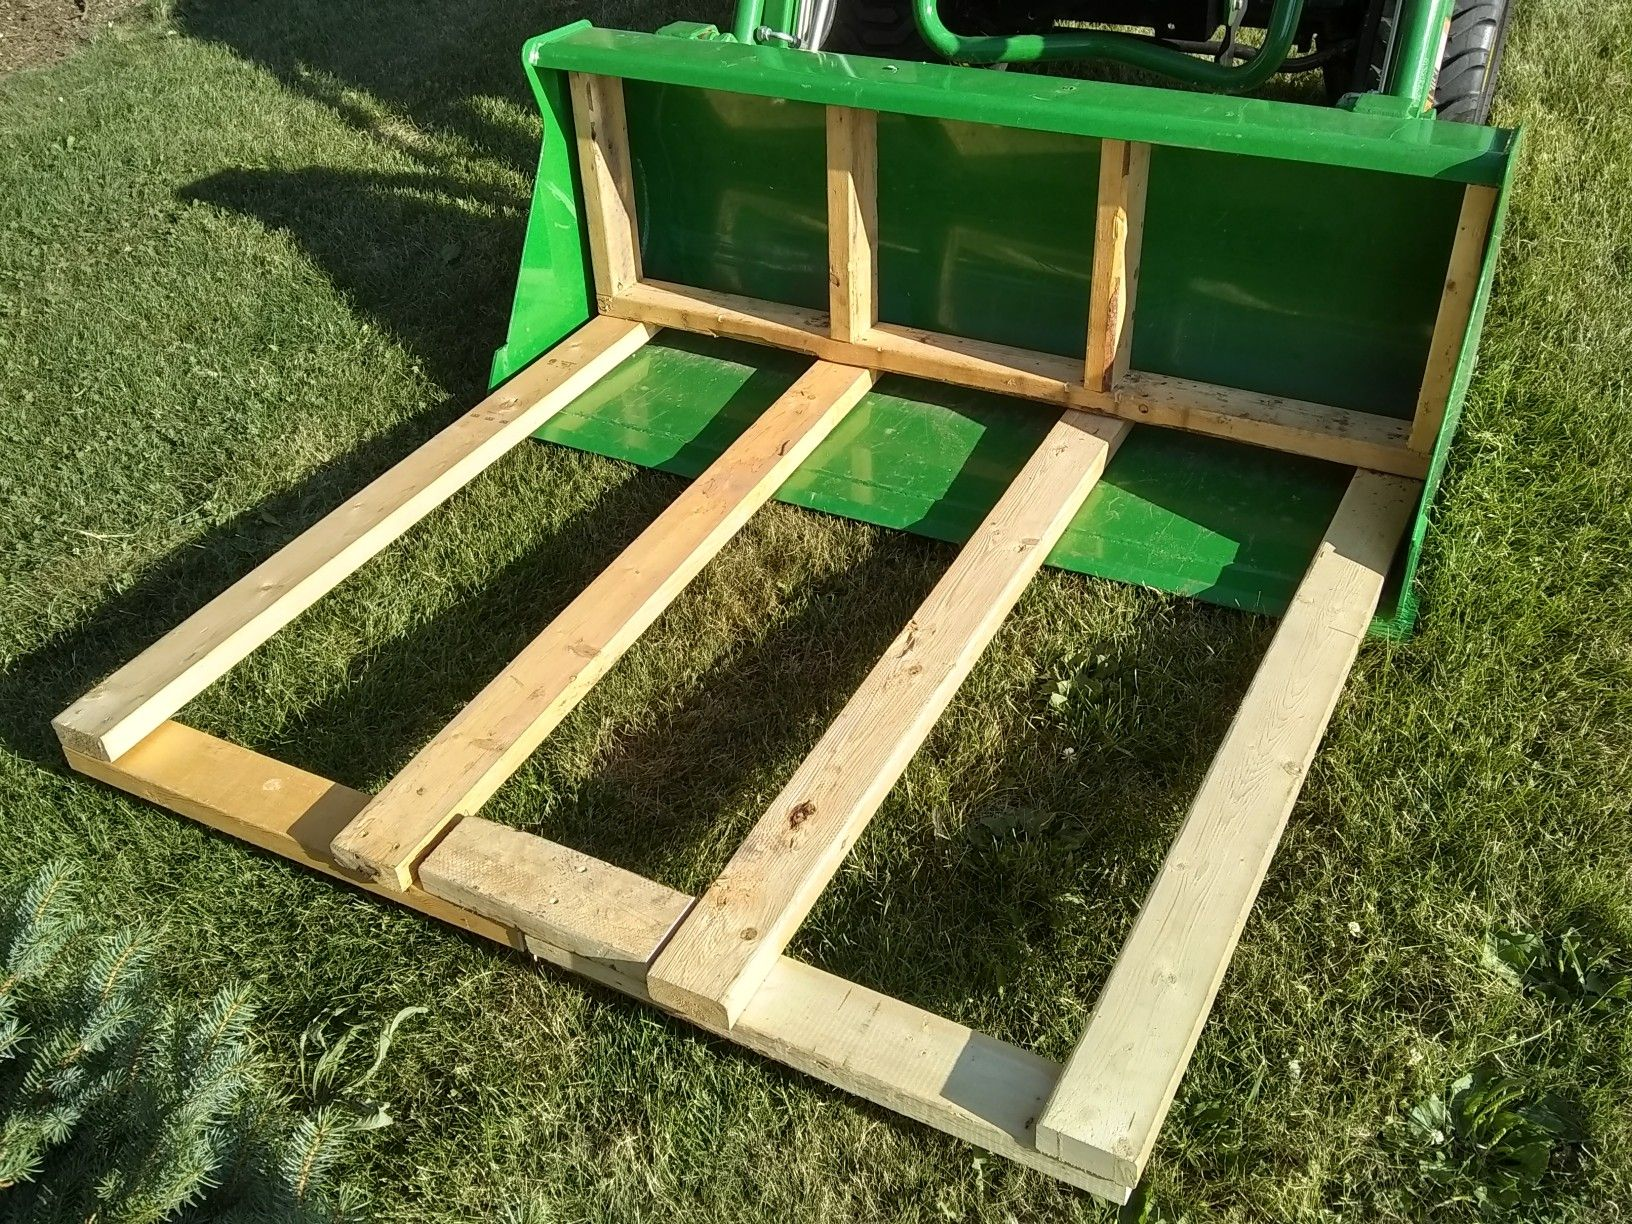 Diy Brush Forks For Front End Loader Built This To Make It Easier To Haul More Tree Tractor Accessories Compact Tractor Attachments Garden Tractor Attachments